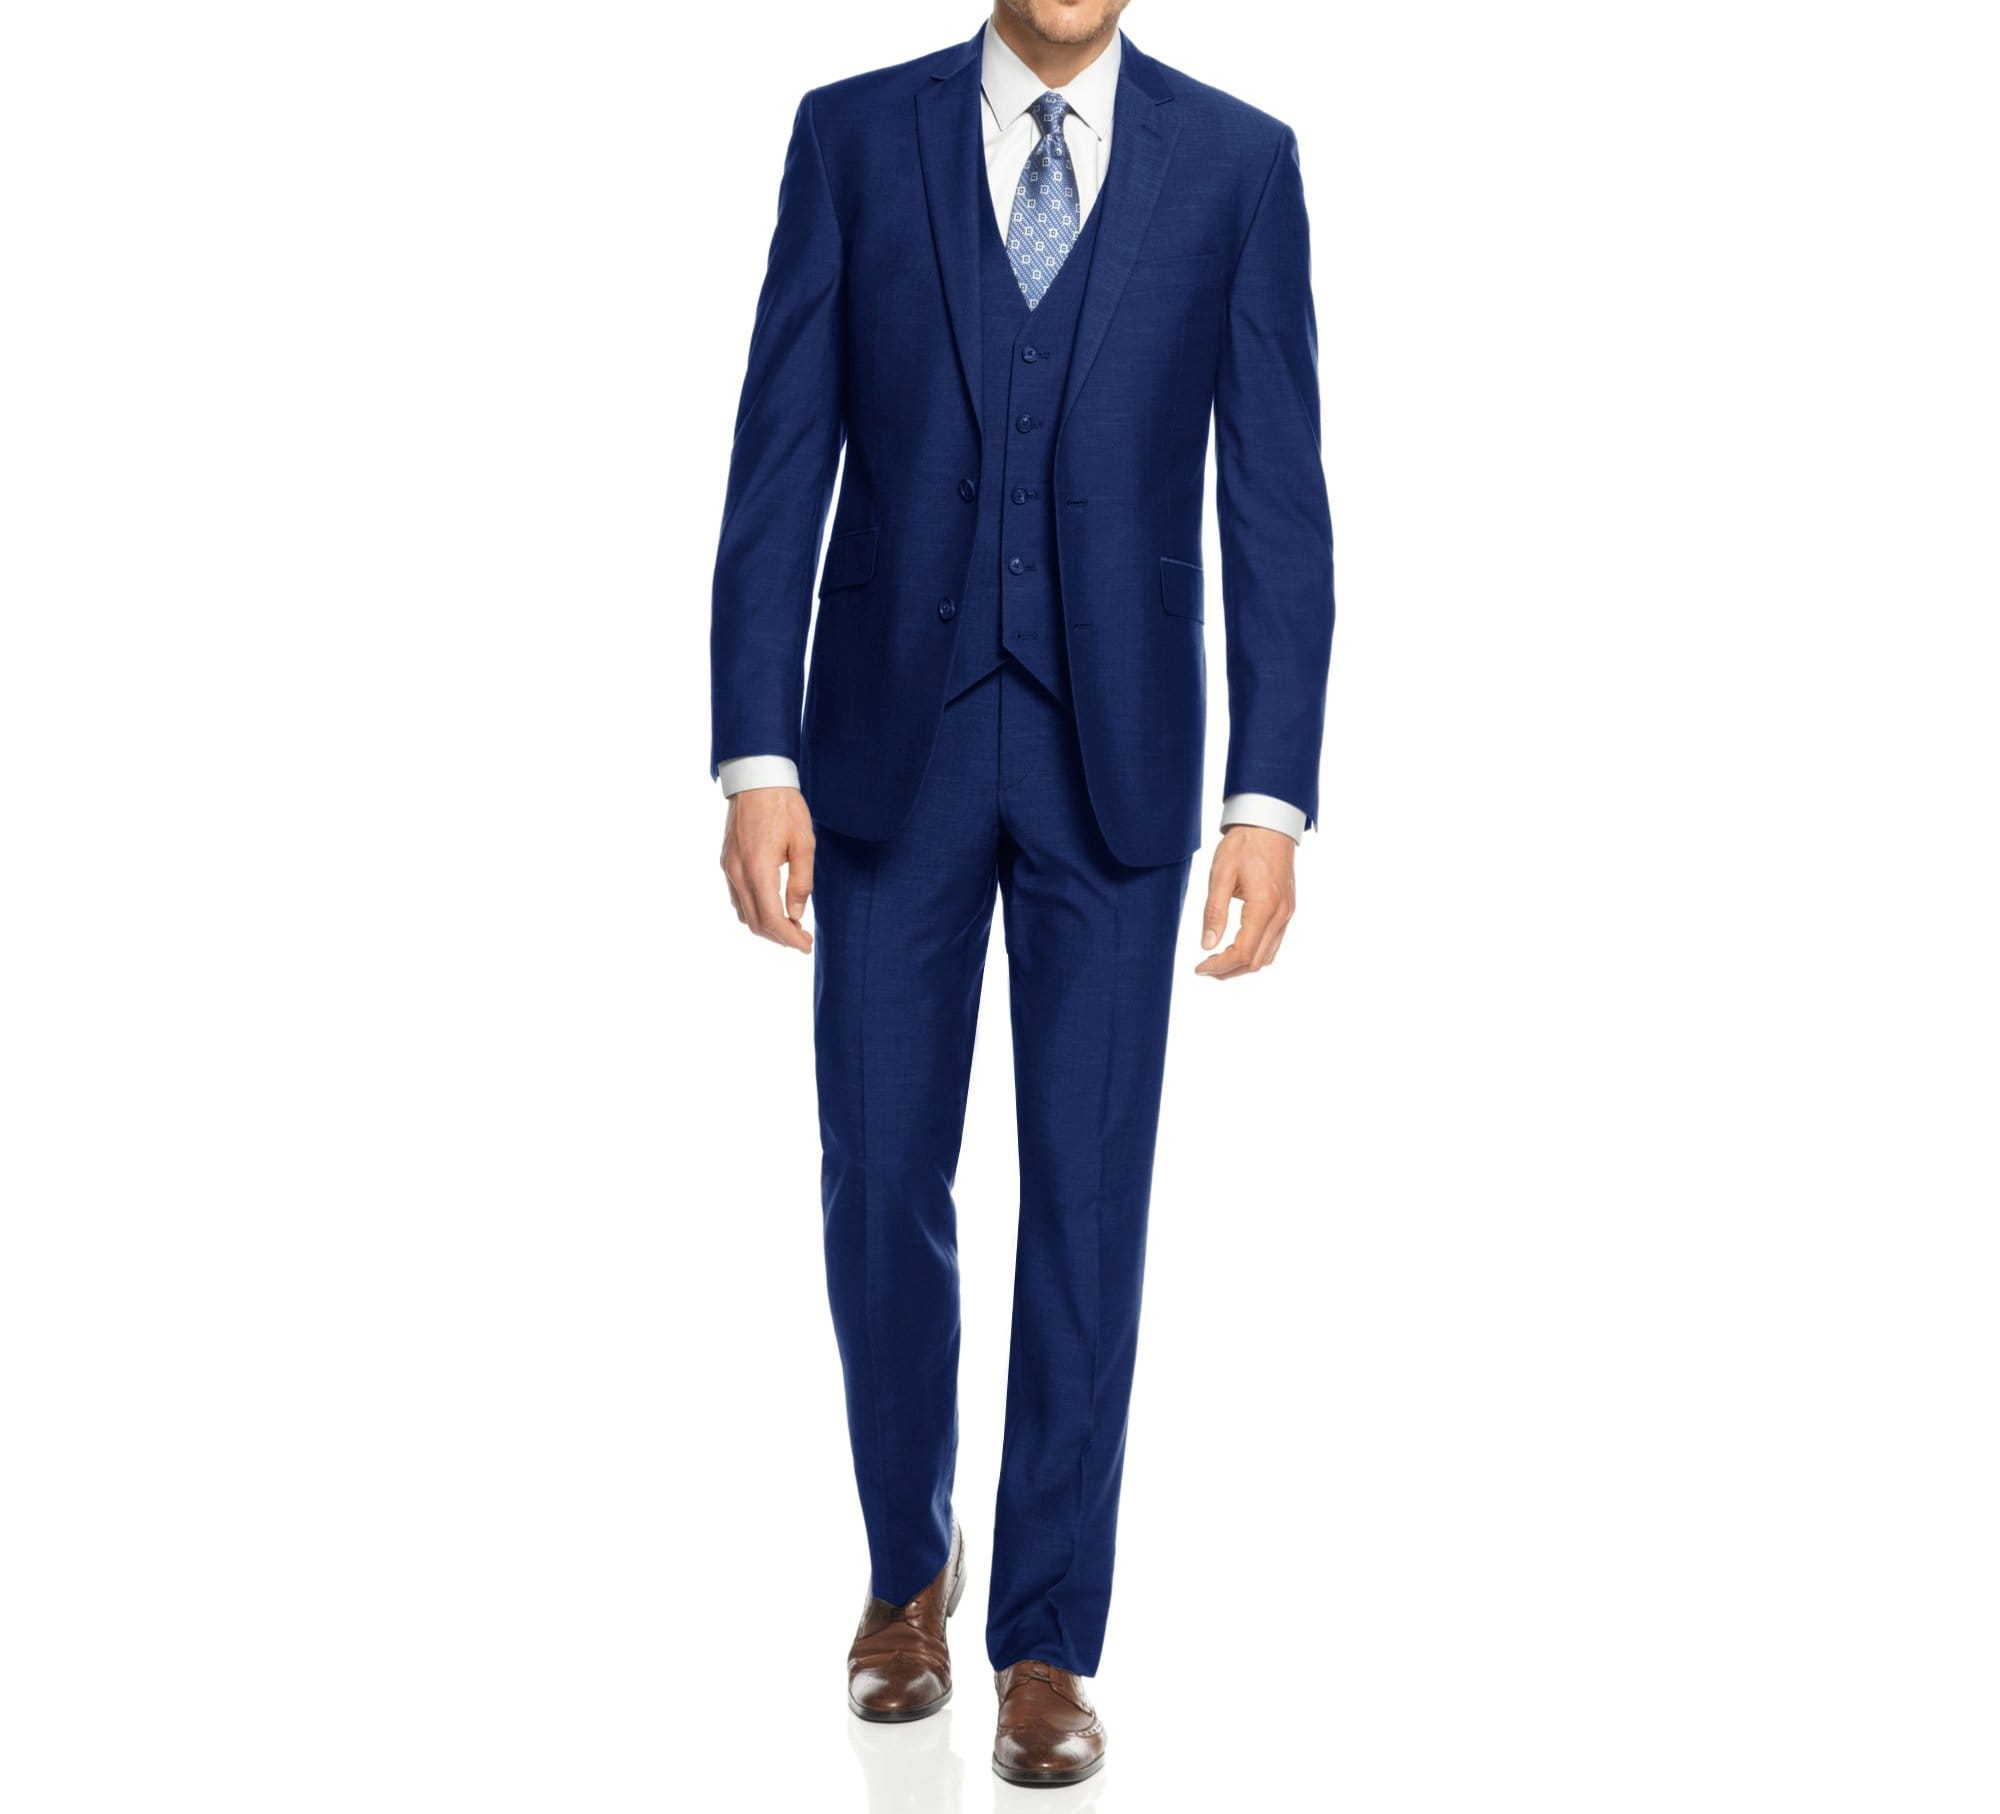 DAILY HAUTE Men's Suits BLUE / 36Rx30W Braveman Men's 3-Piece Three Piece Slim Fit Formal Cut Suit Set